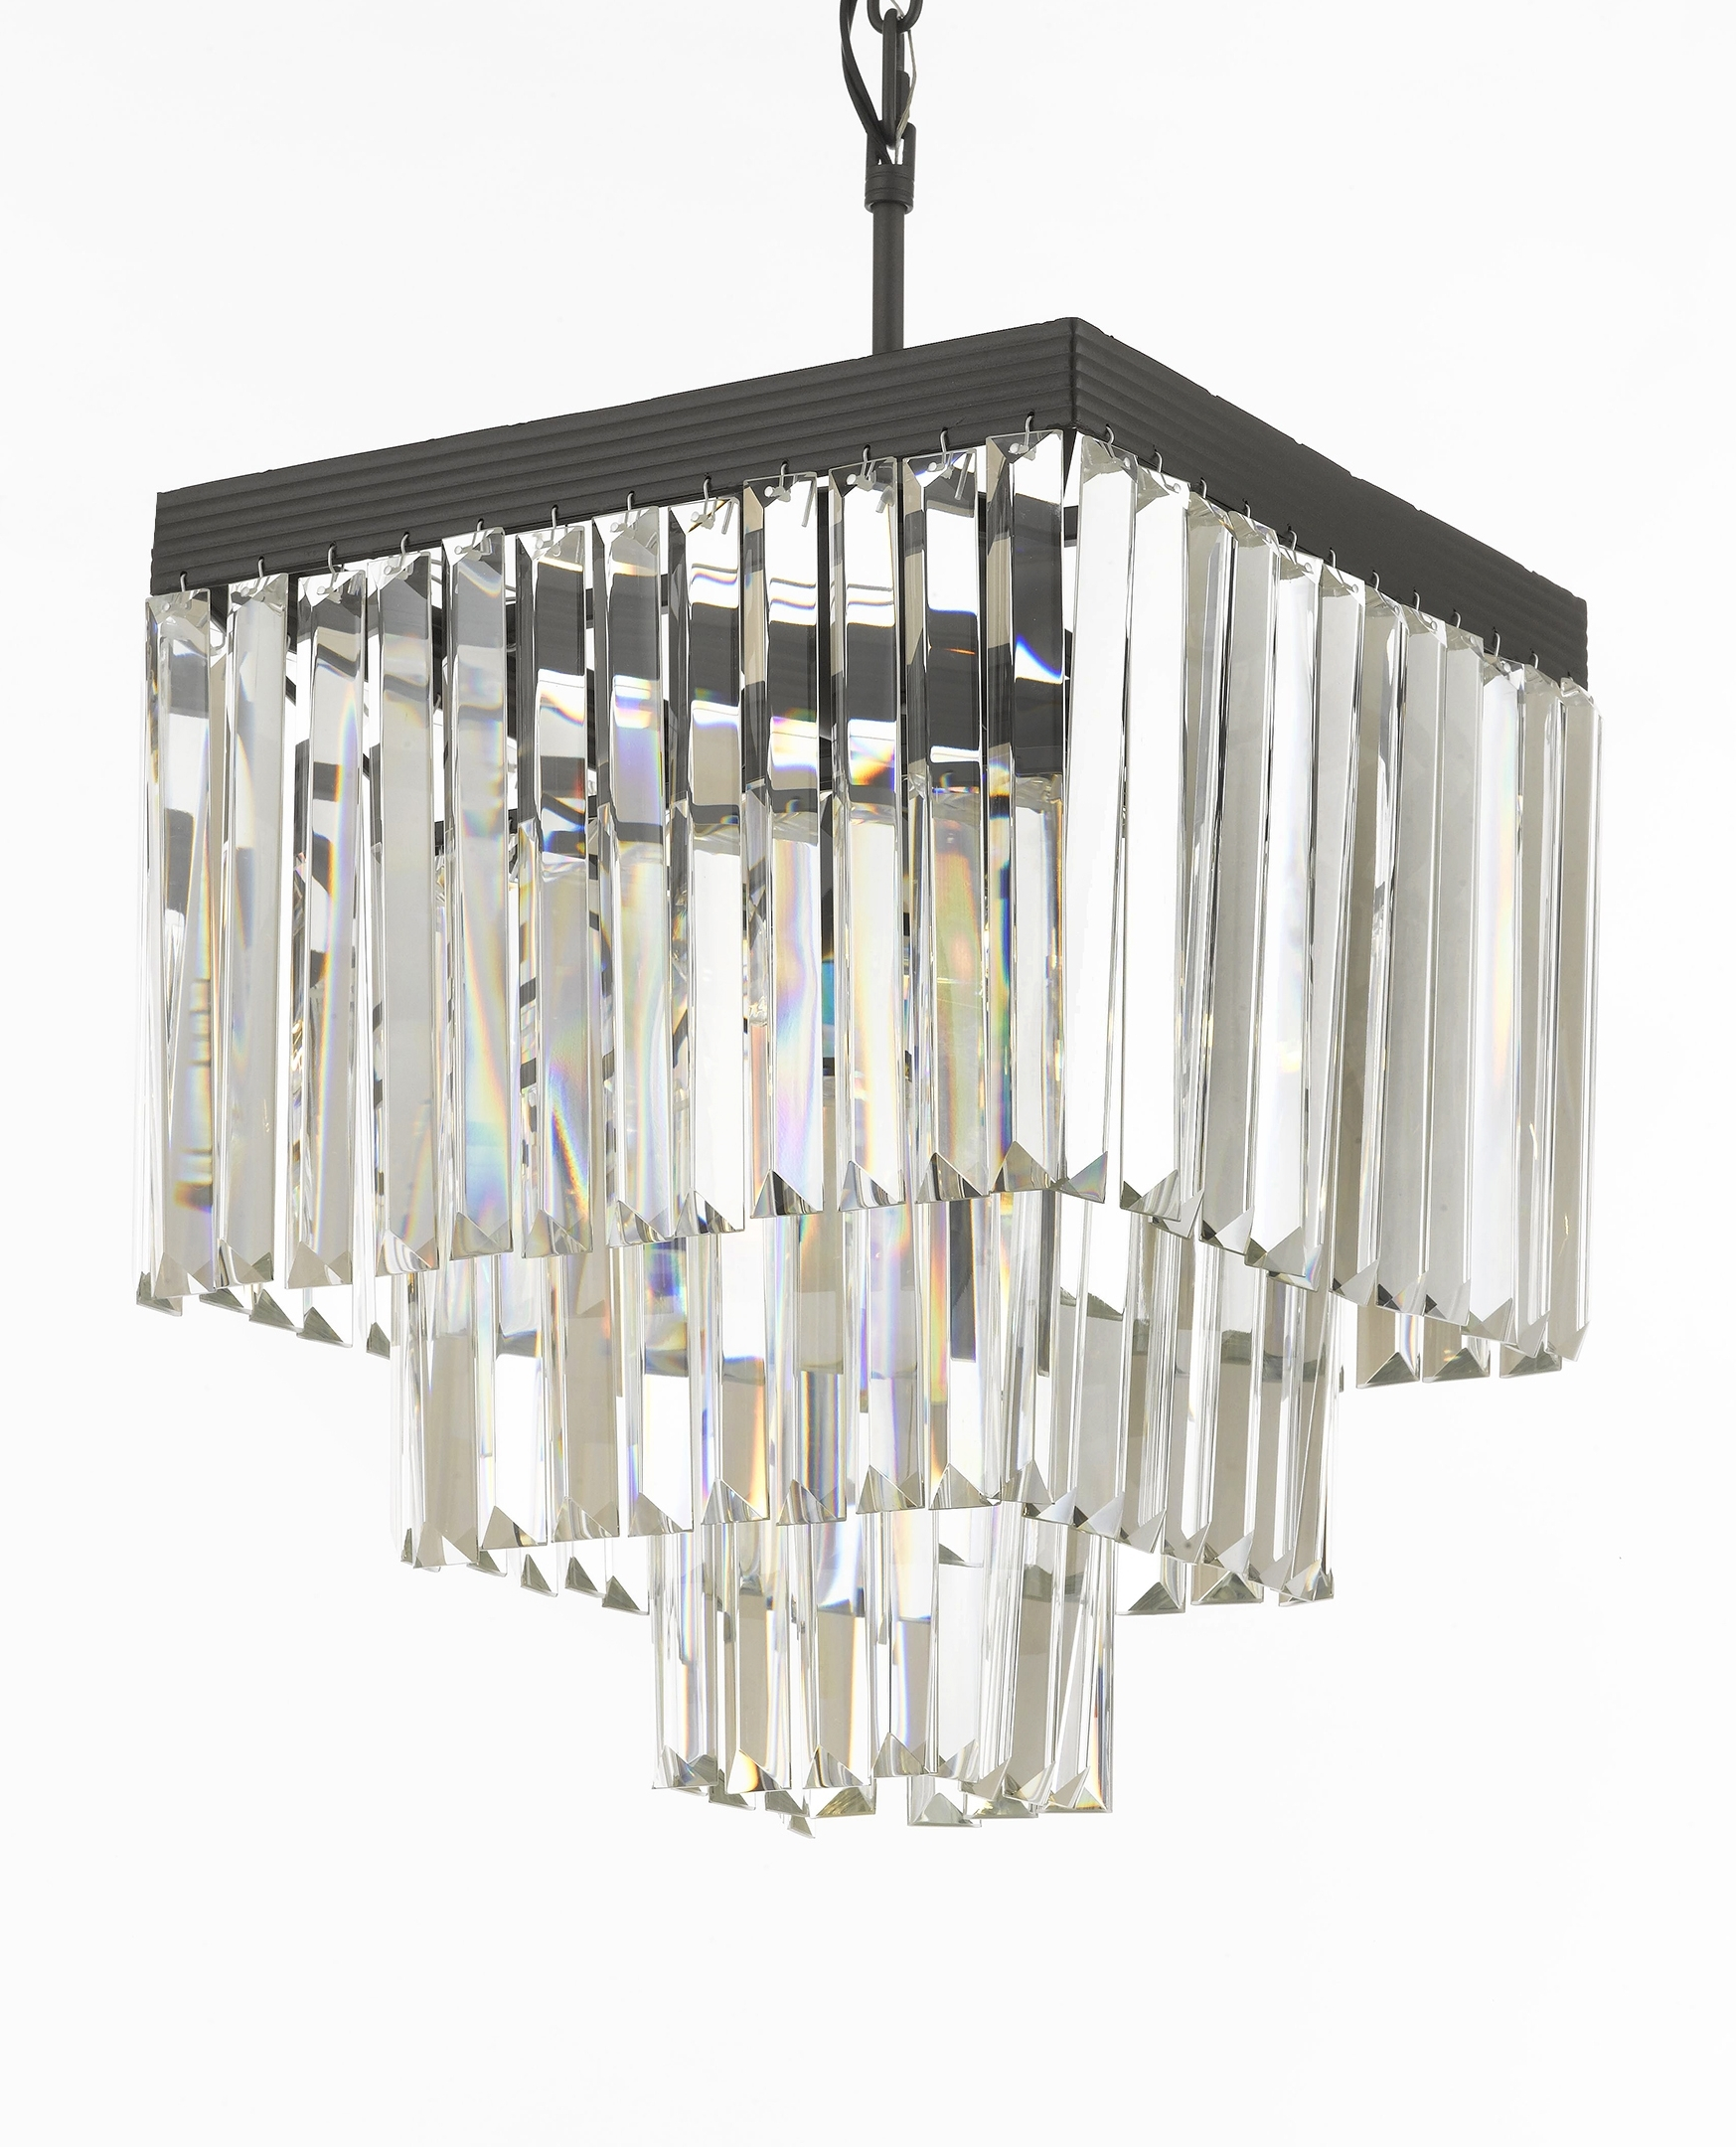 Most Up To Date 3 Tier Crystal Chandelier For Under 300 Chandelier Chandeliers, Crystal Chandelier, Crystal (View 13 of 20)